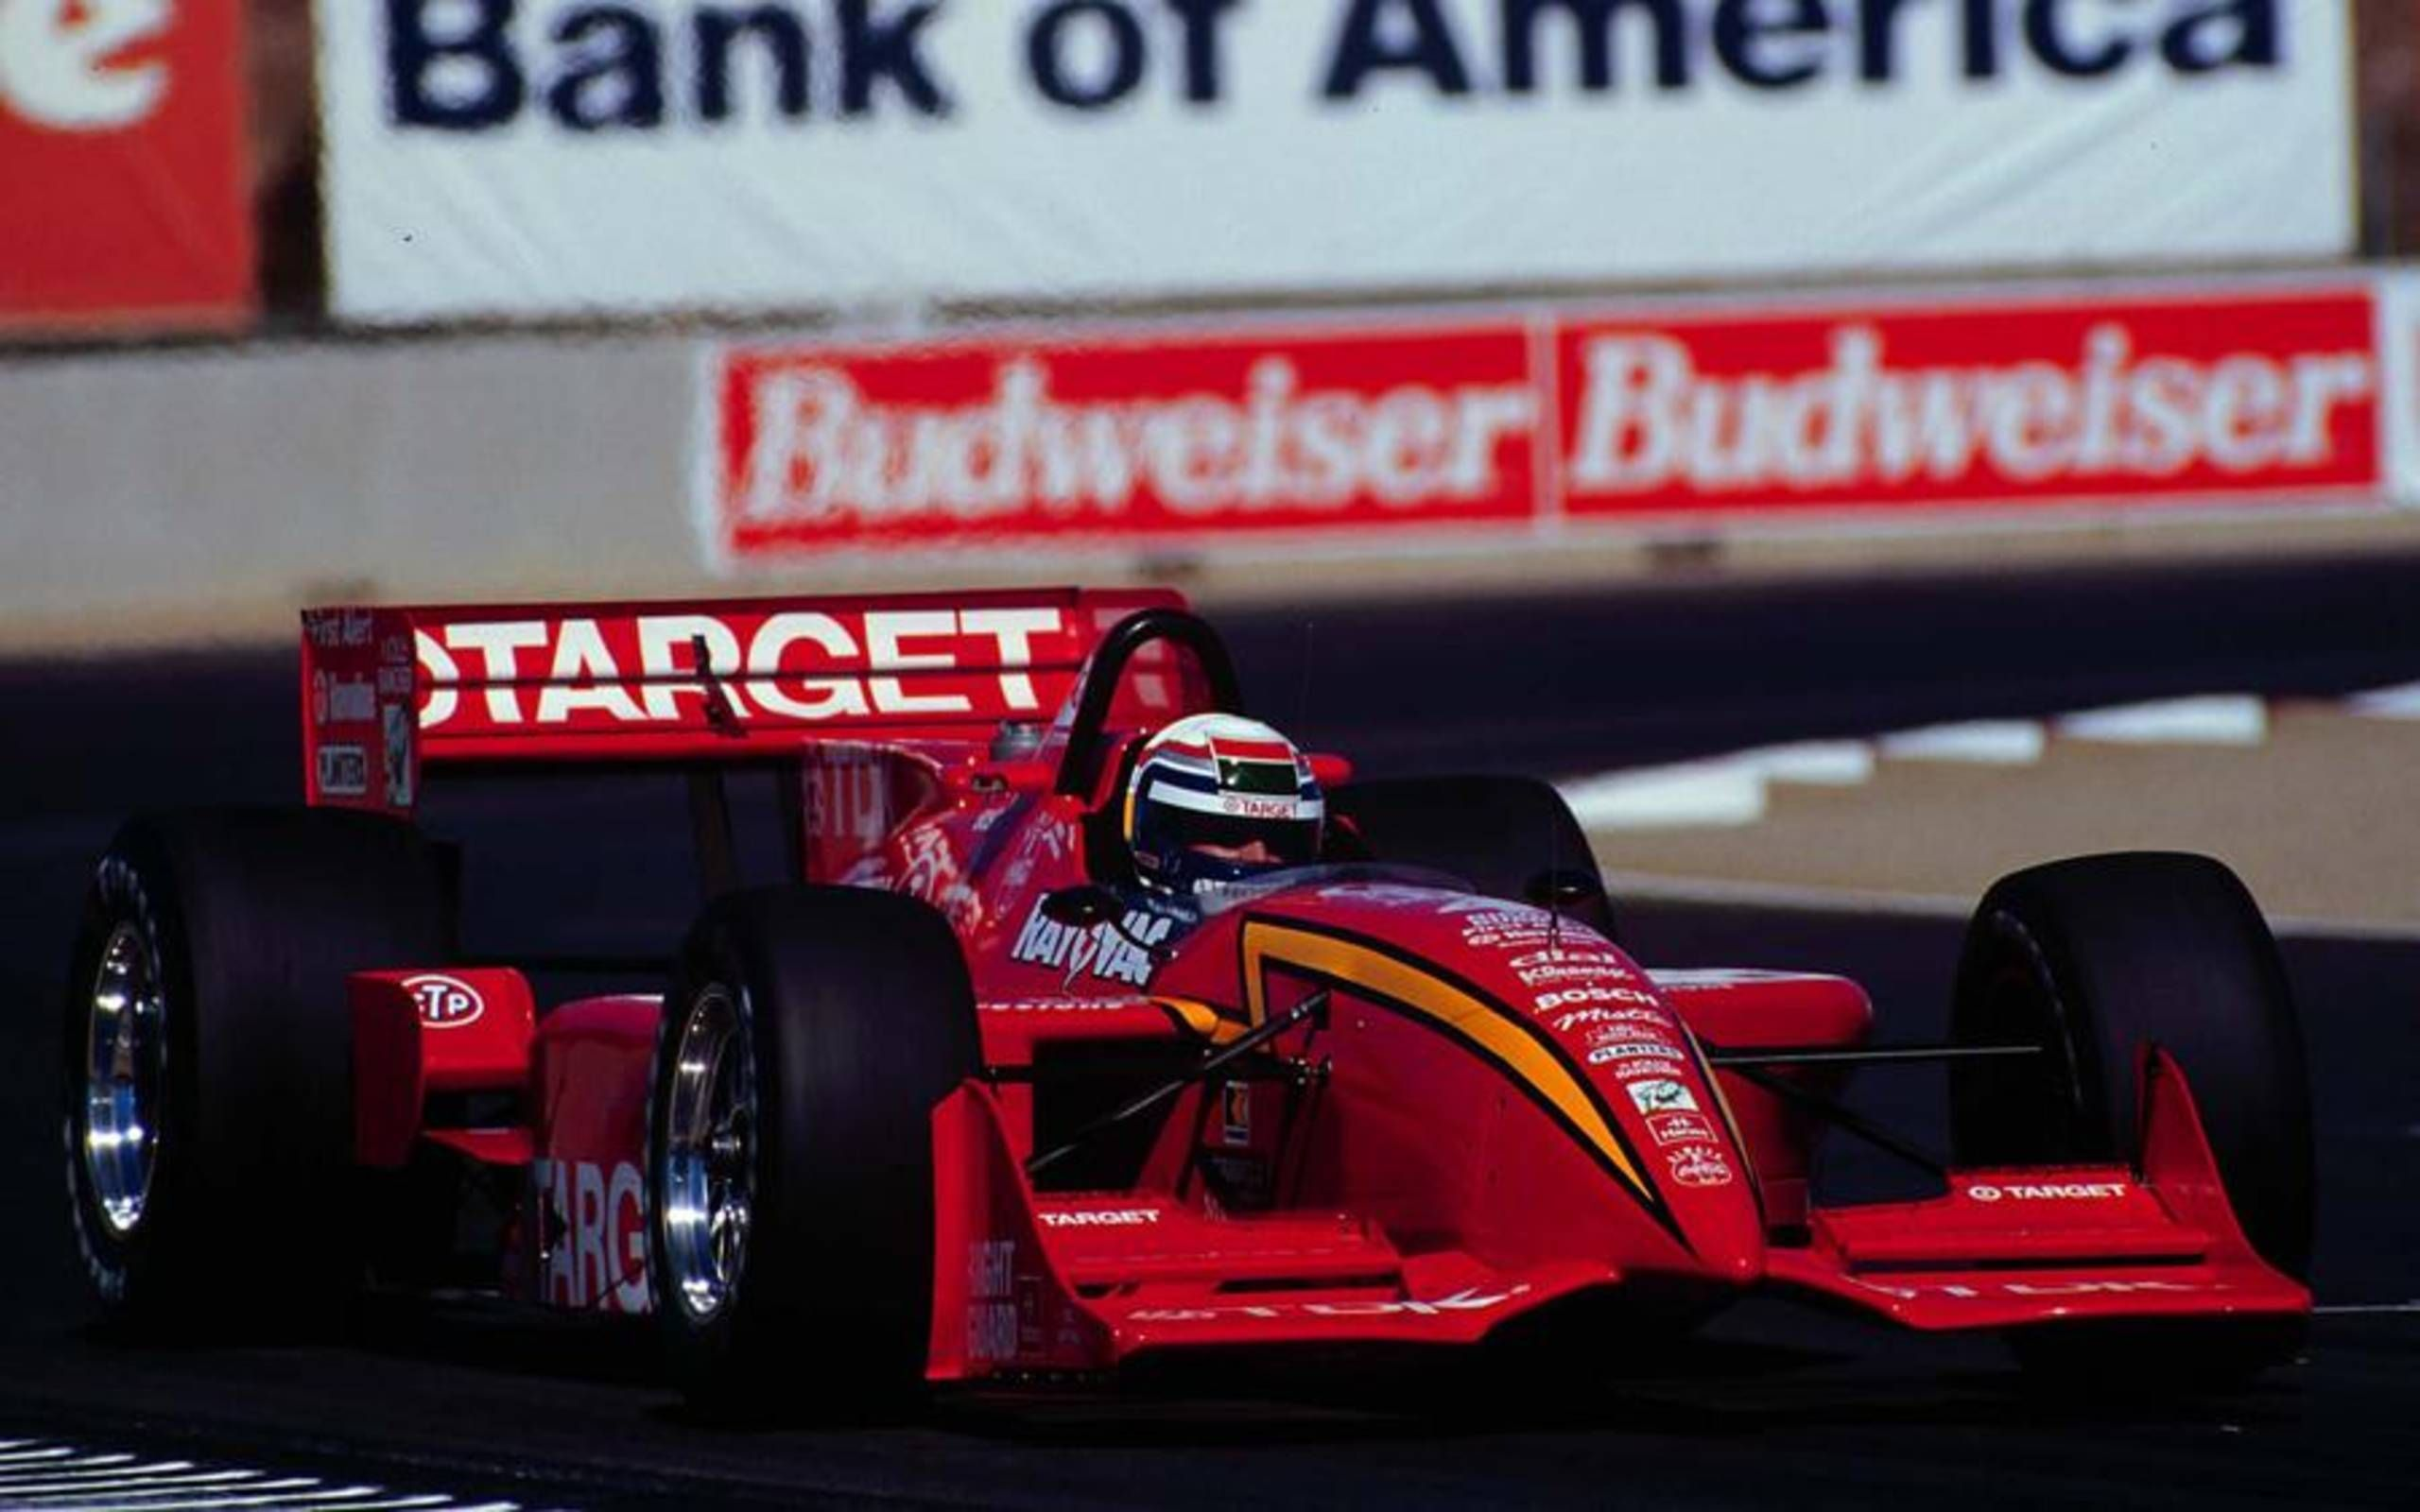 Chip Ganassi awards Alex Zanardi with winning car from 1996